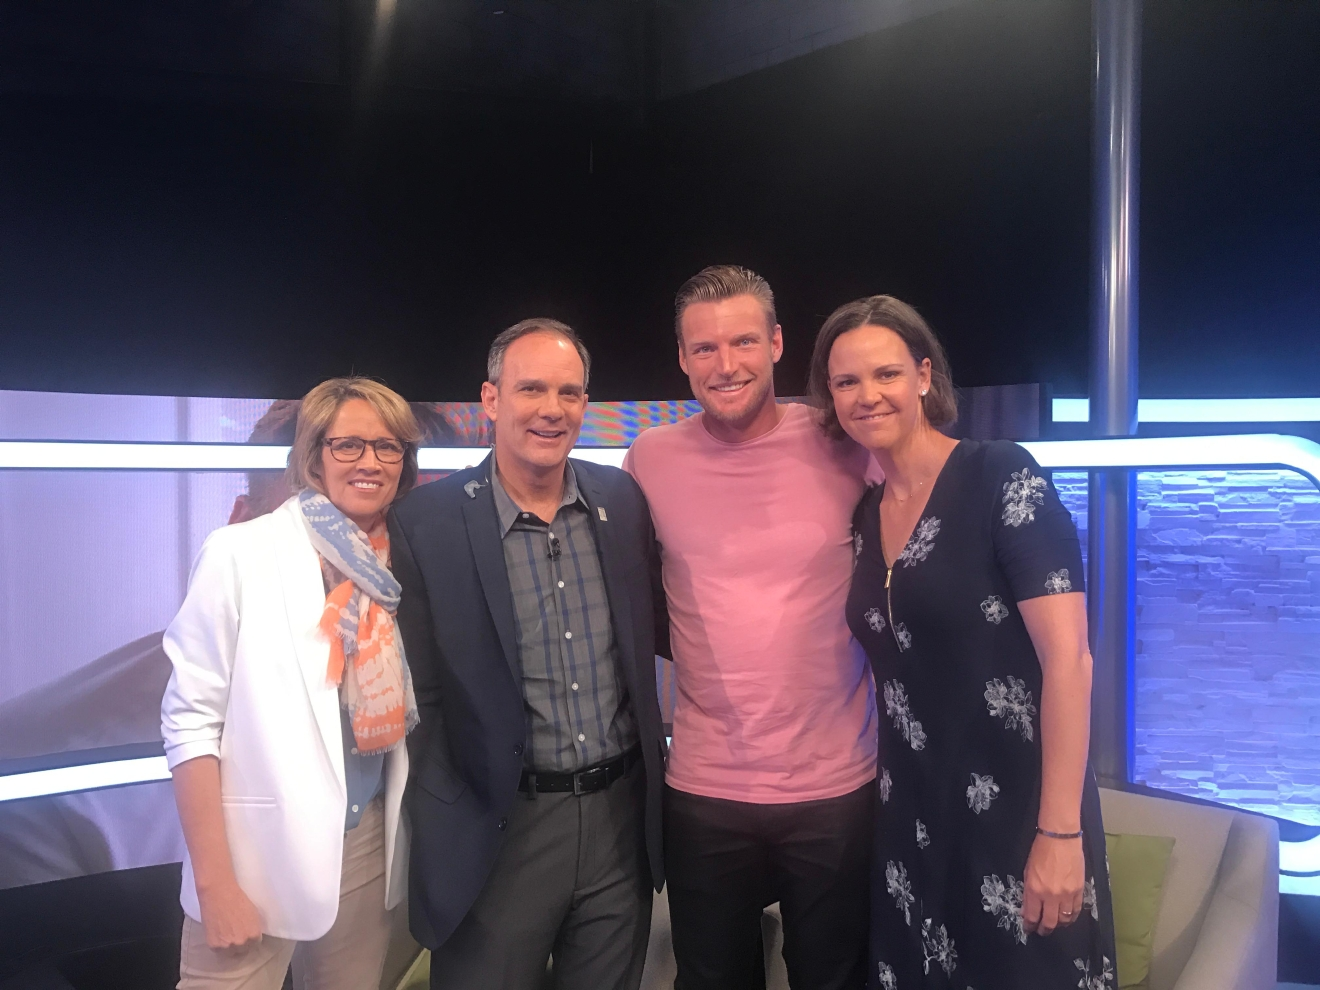 Sam Groth with Tennis Channel talent Mary Carillo, Paul Annacone, and Lindsay Davenport.